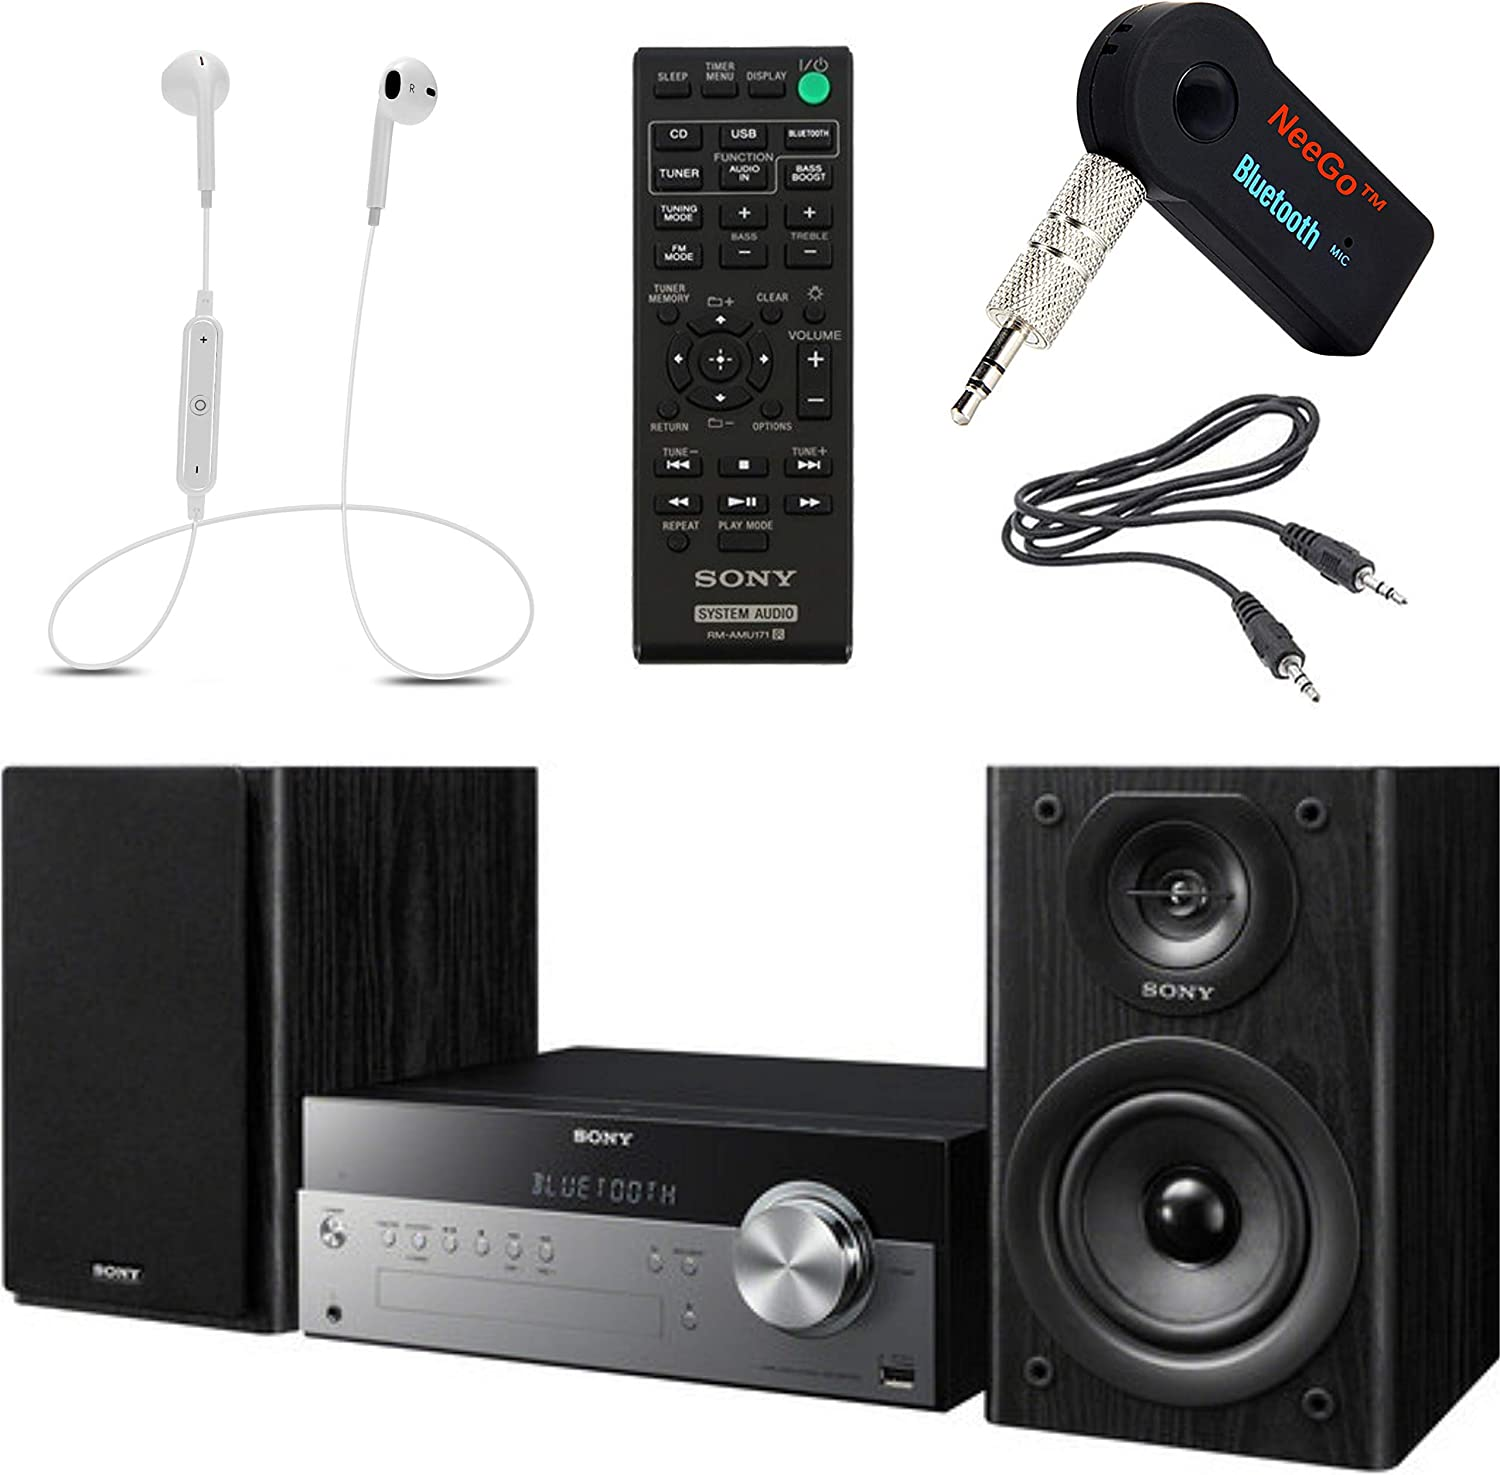 Sony Bluetooth Micro Music System Bundle – [2] Piece Set Includes Micro Hi-fi Shelf System with Single Disc Cd Player, Bluetooth, USB Input, 2-Way, Bass Reflex Speakers NeeGo Bluetooth Receiver;